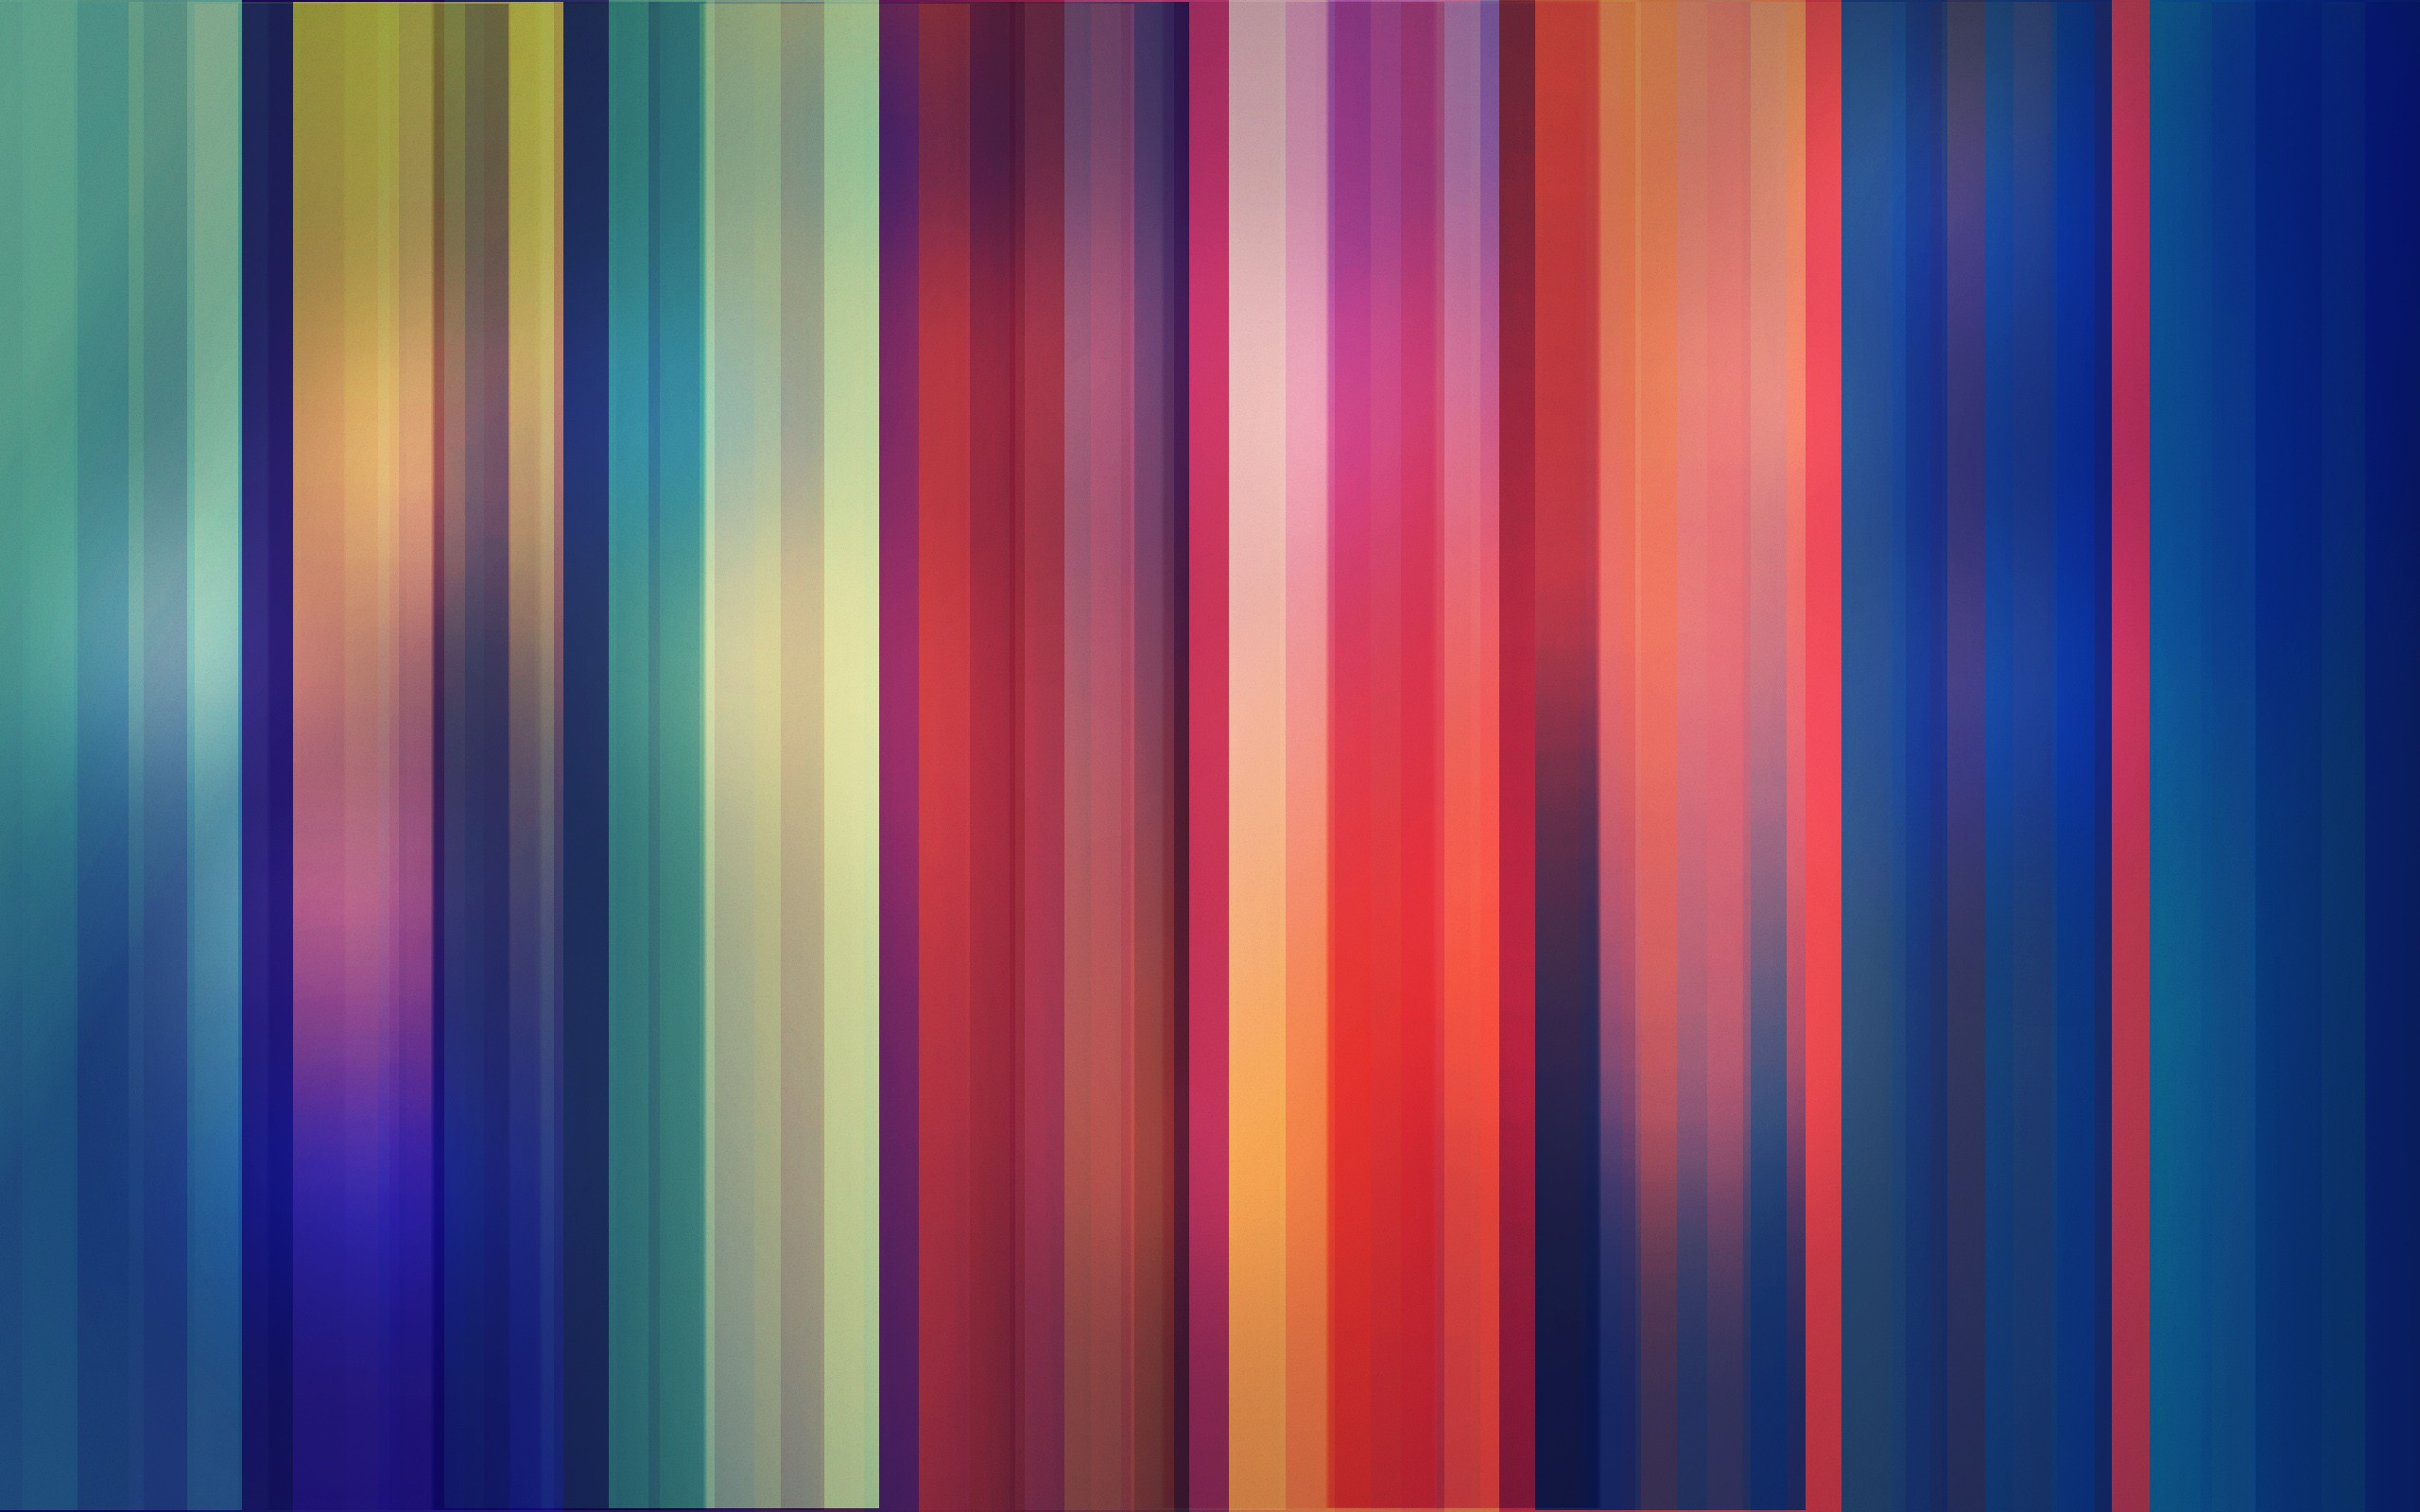 Vertical Line Design : Colorful stripes hd abstract k wallpapers images